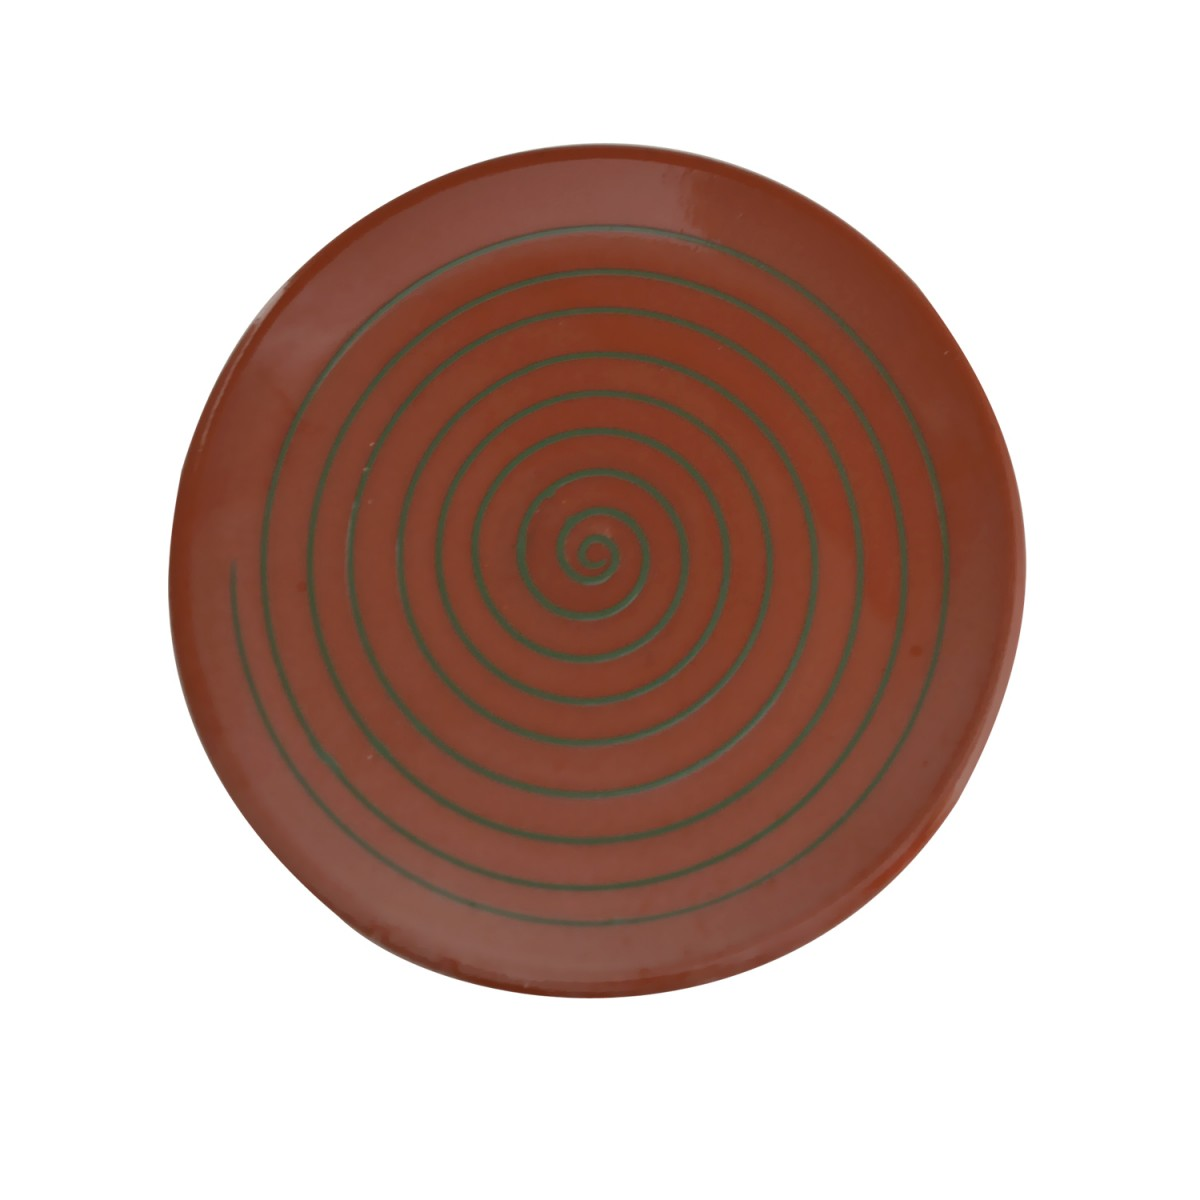 10010-Green_Spiral_Handcrafted_Ceramic_Plate-1